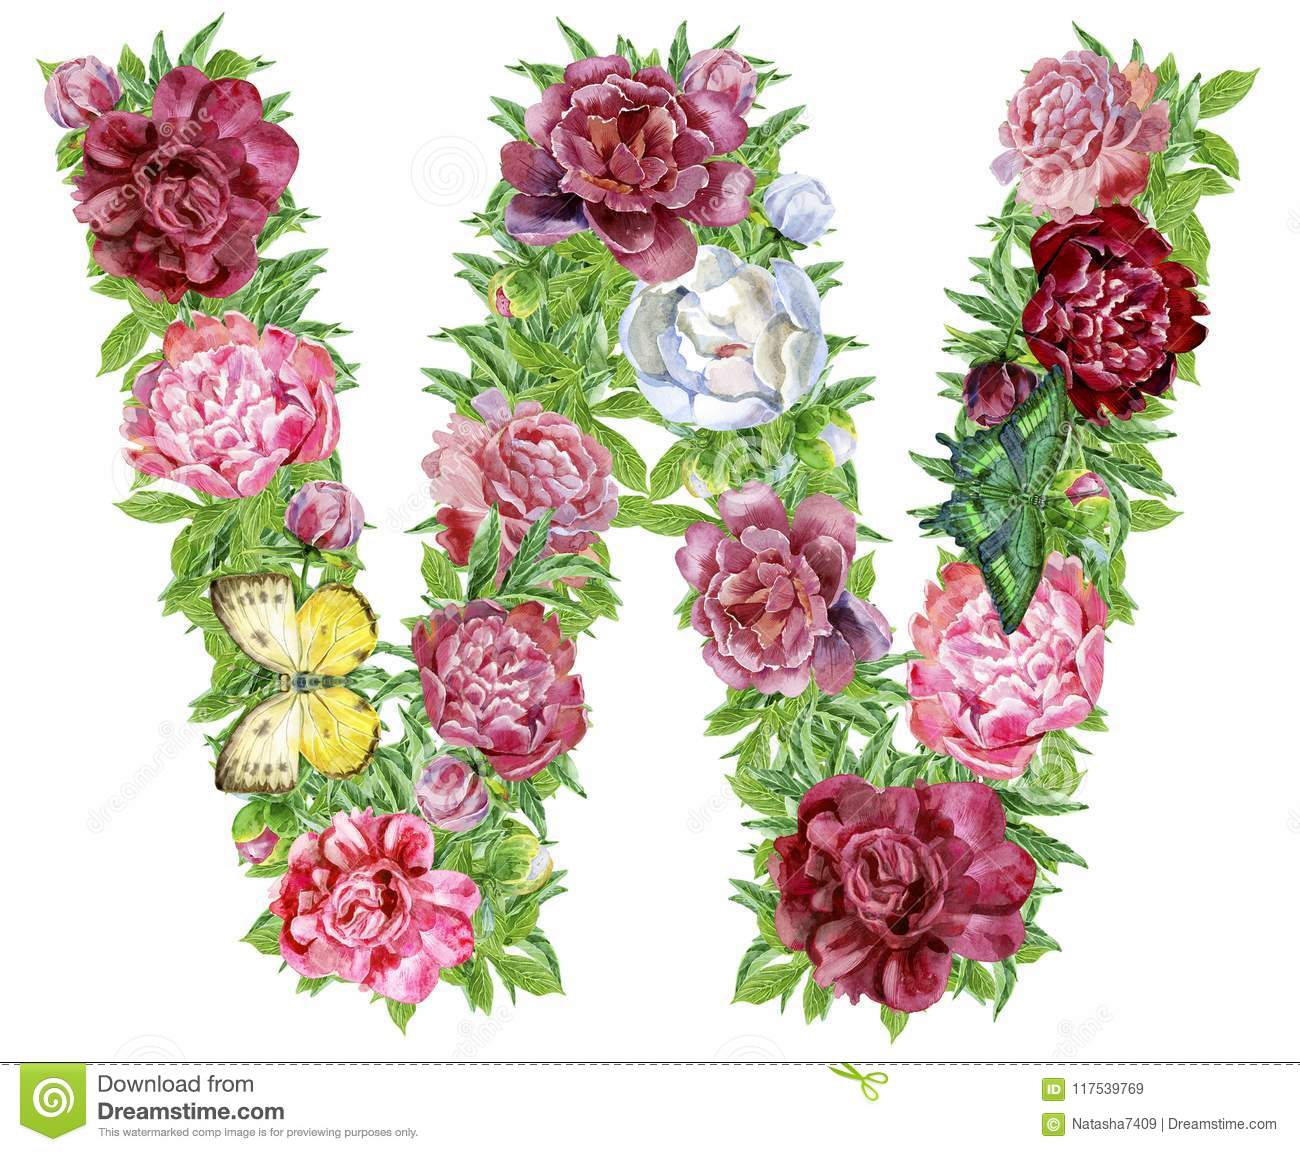 Letter W of watercolor flowers